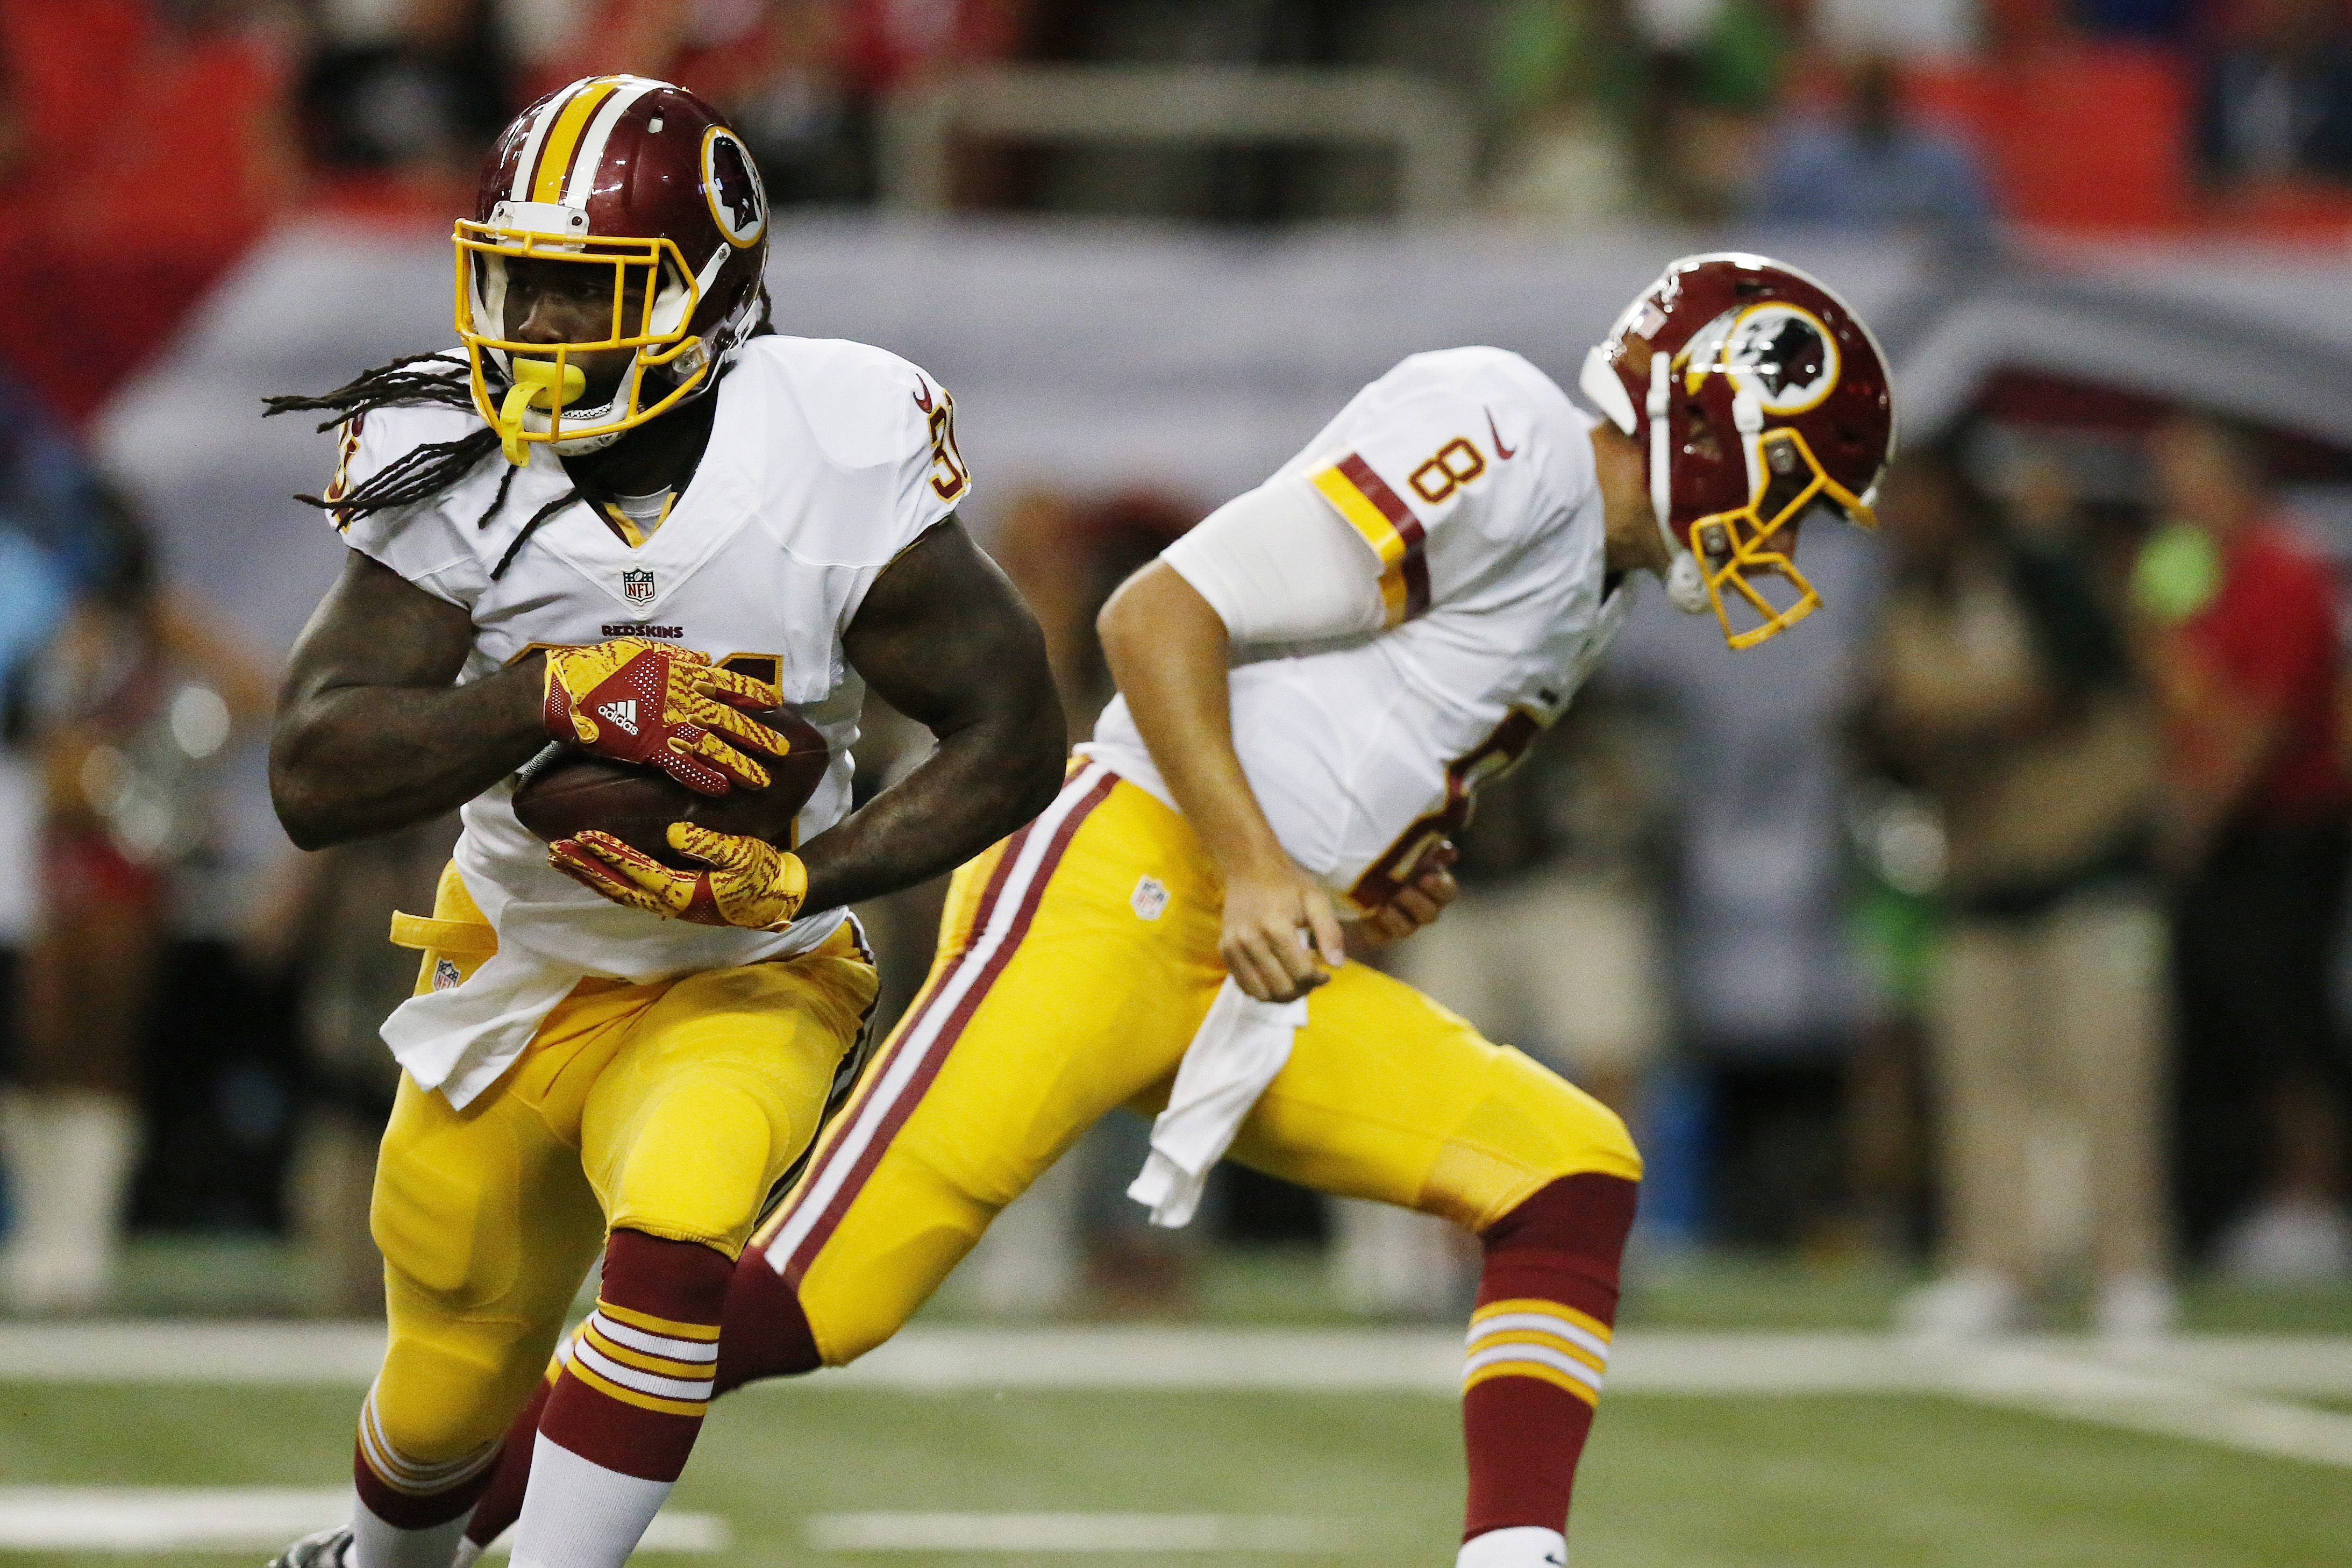 FILE - In this Aug. 11, 2016, file photo, Washington Redskins running back Matt Jones (31) runs the ball against the Atlanta Falcons during the first half of a preseason NFL football game in Atlanta. Jones expects to play for the  Redskins in their season